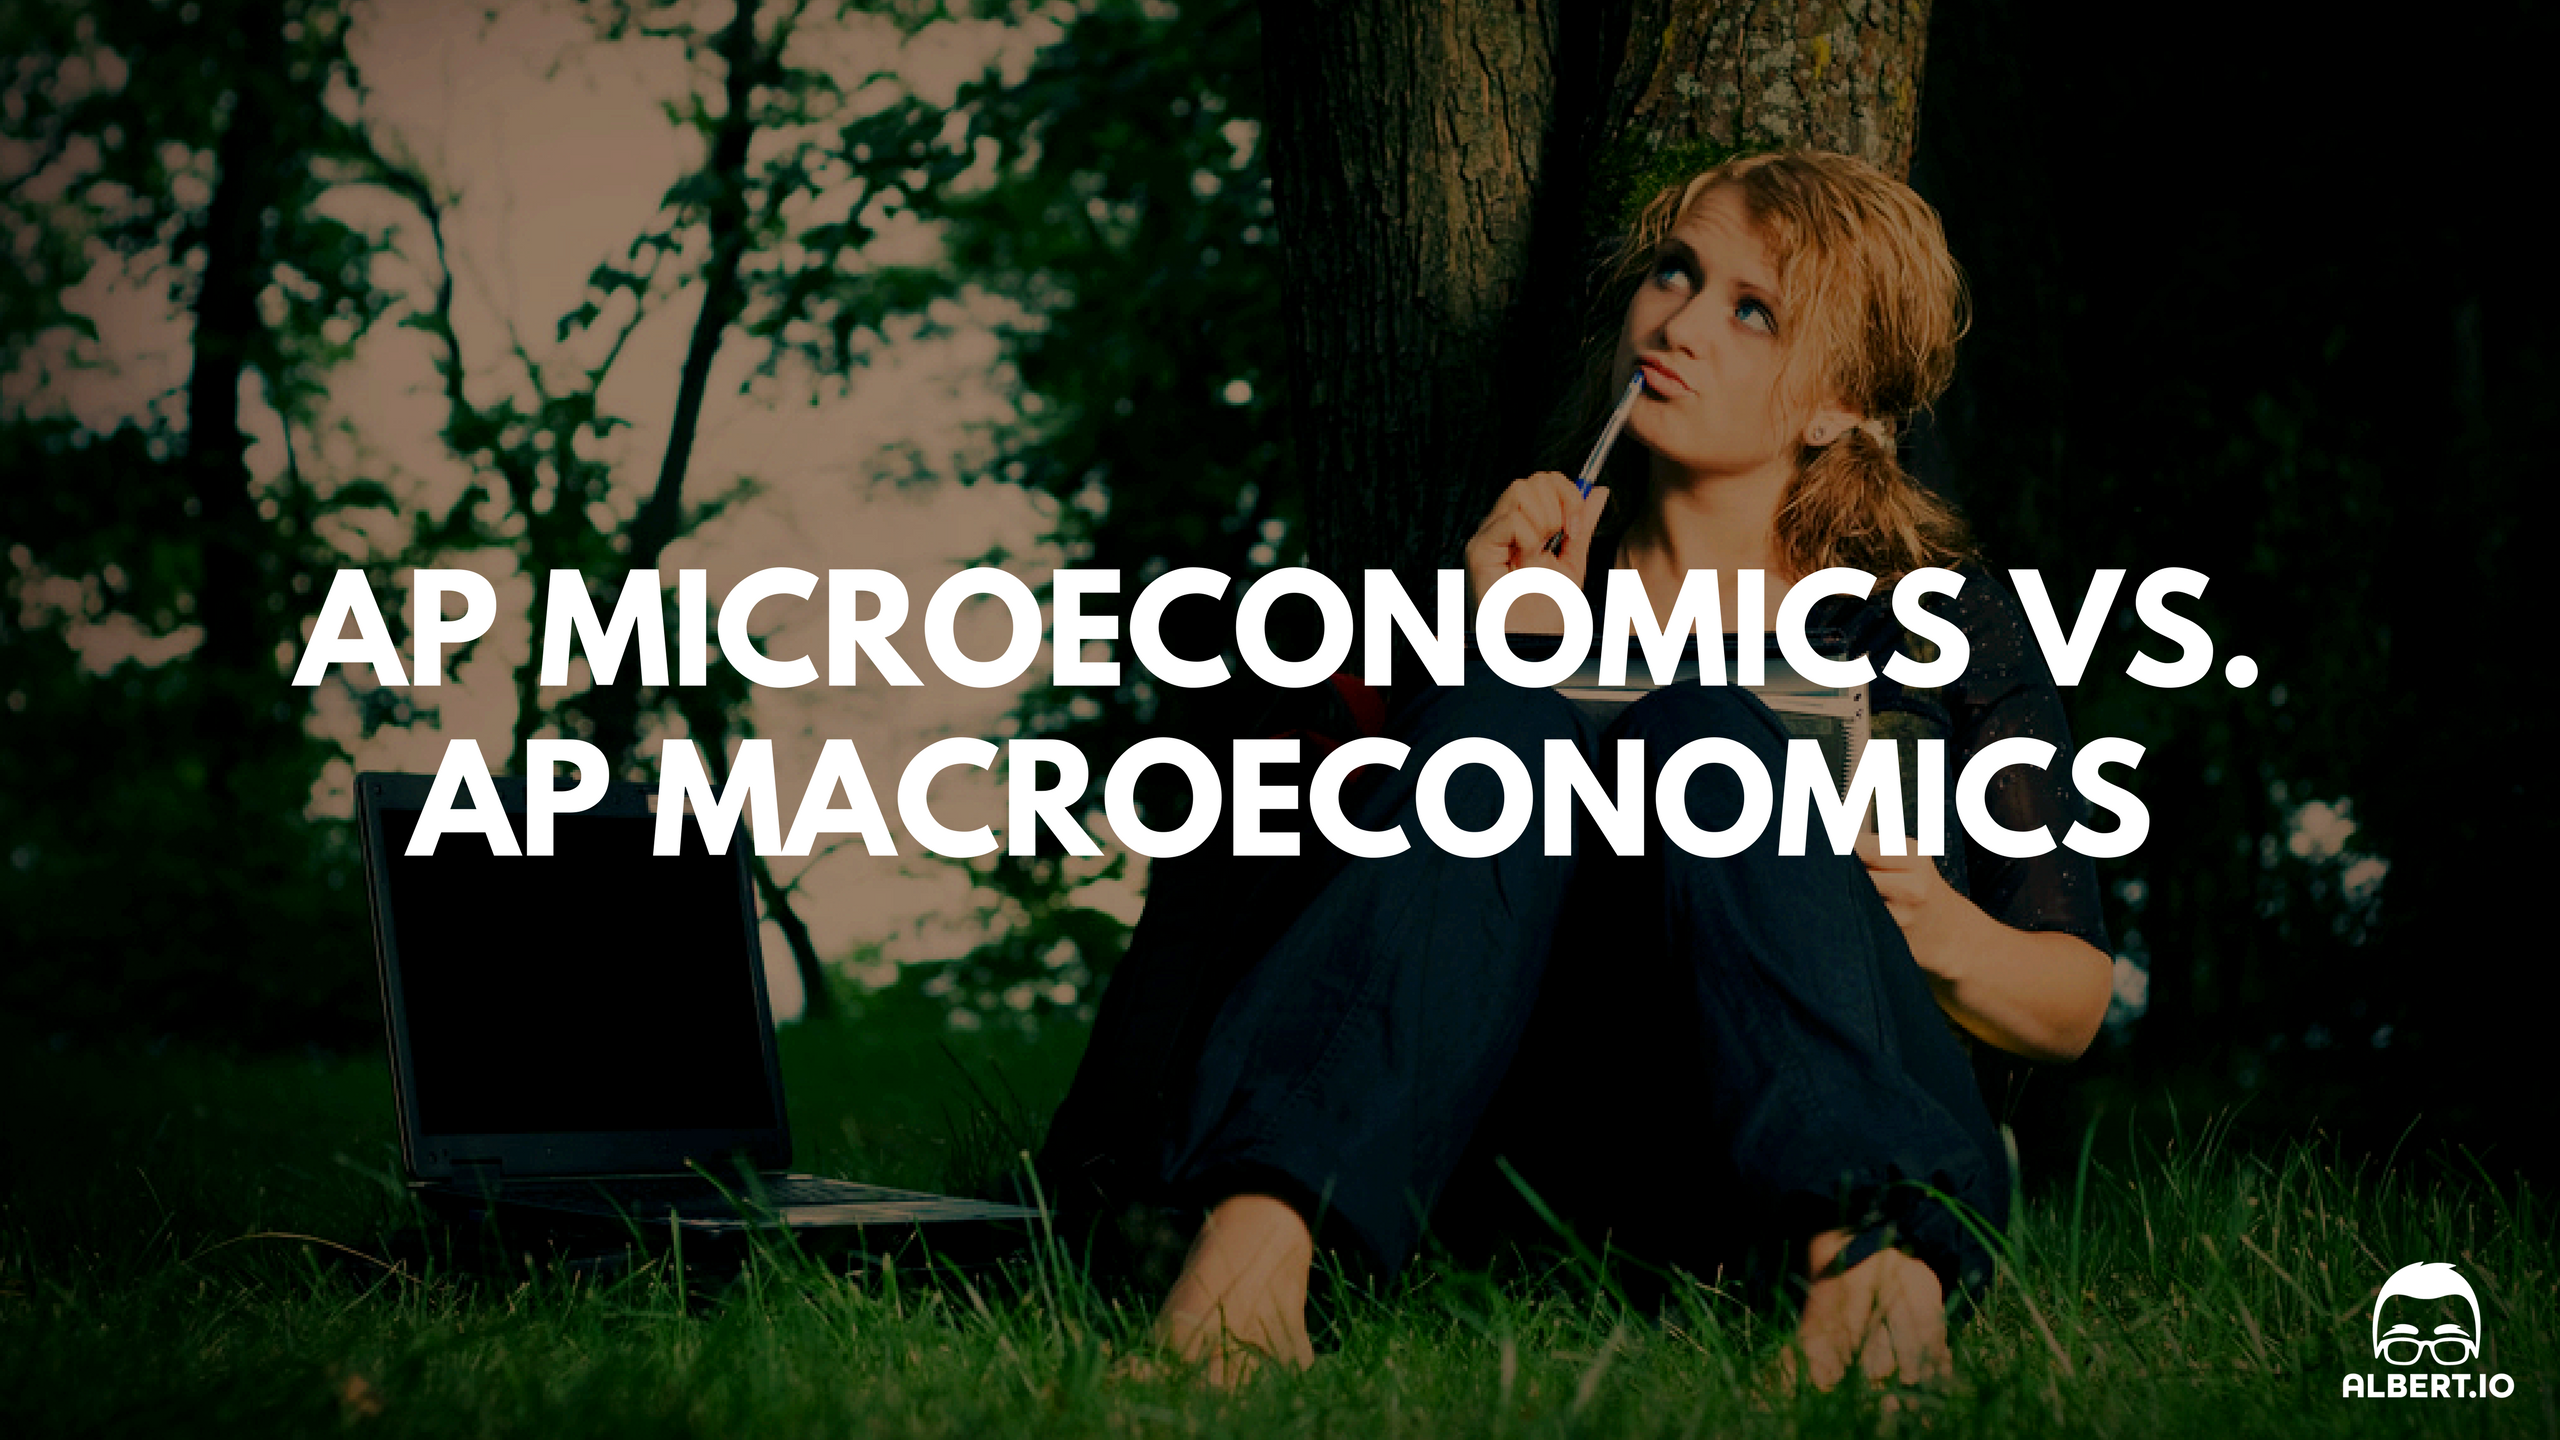 Ap microeconomics released mc